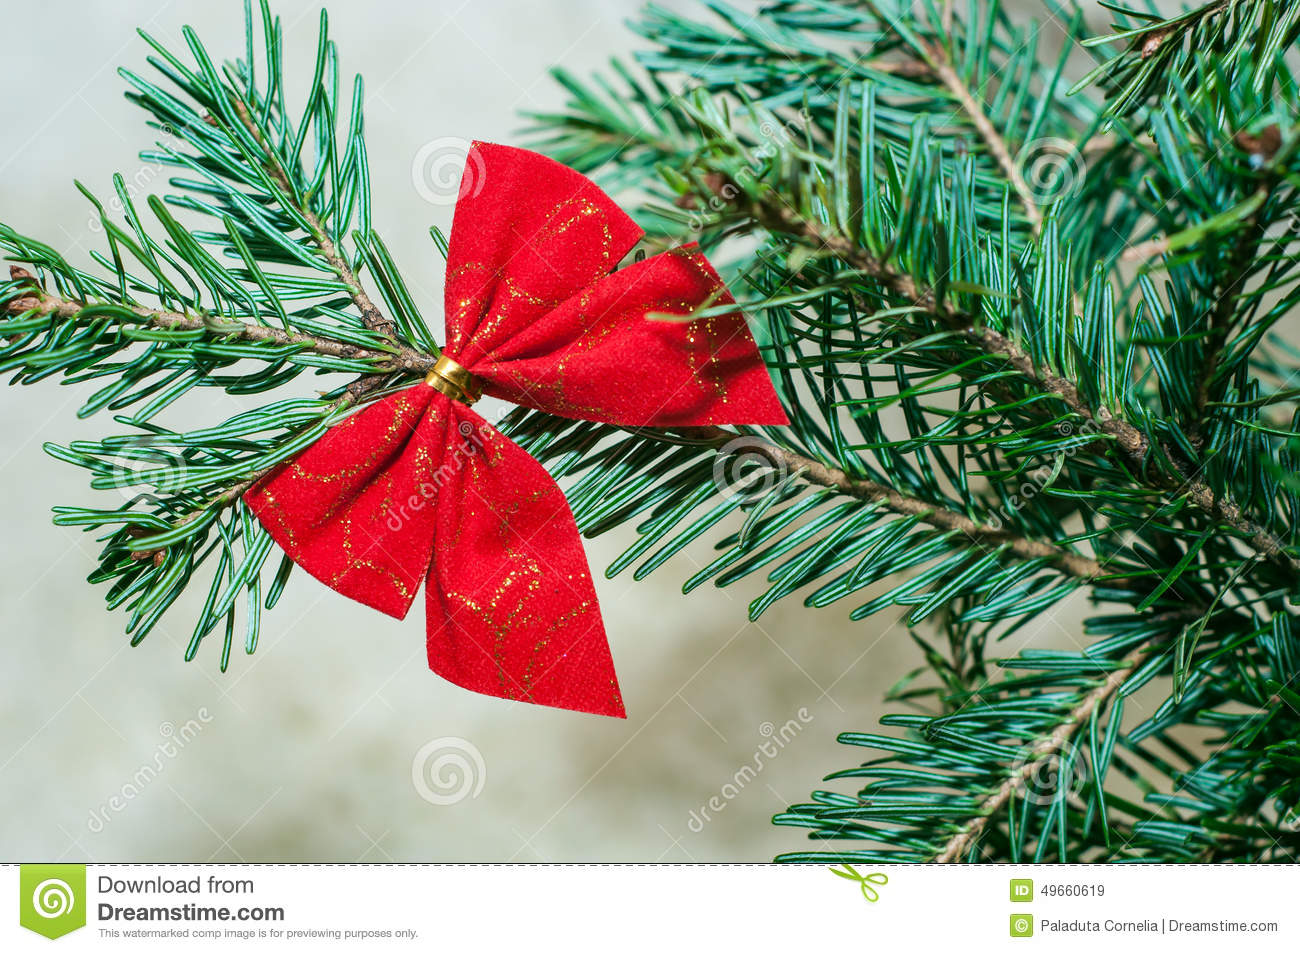 Christmas Tree Bows Red.Red Bow On Christmas Tree Stock Image Image Of Decorated